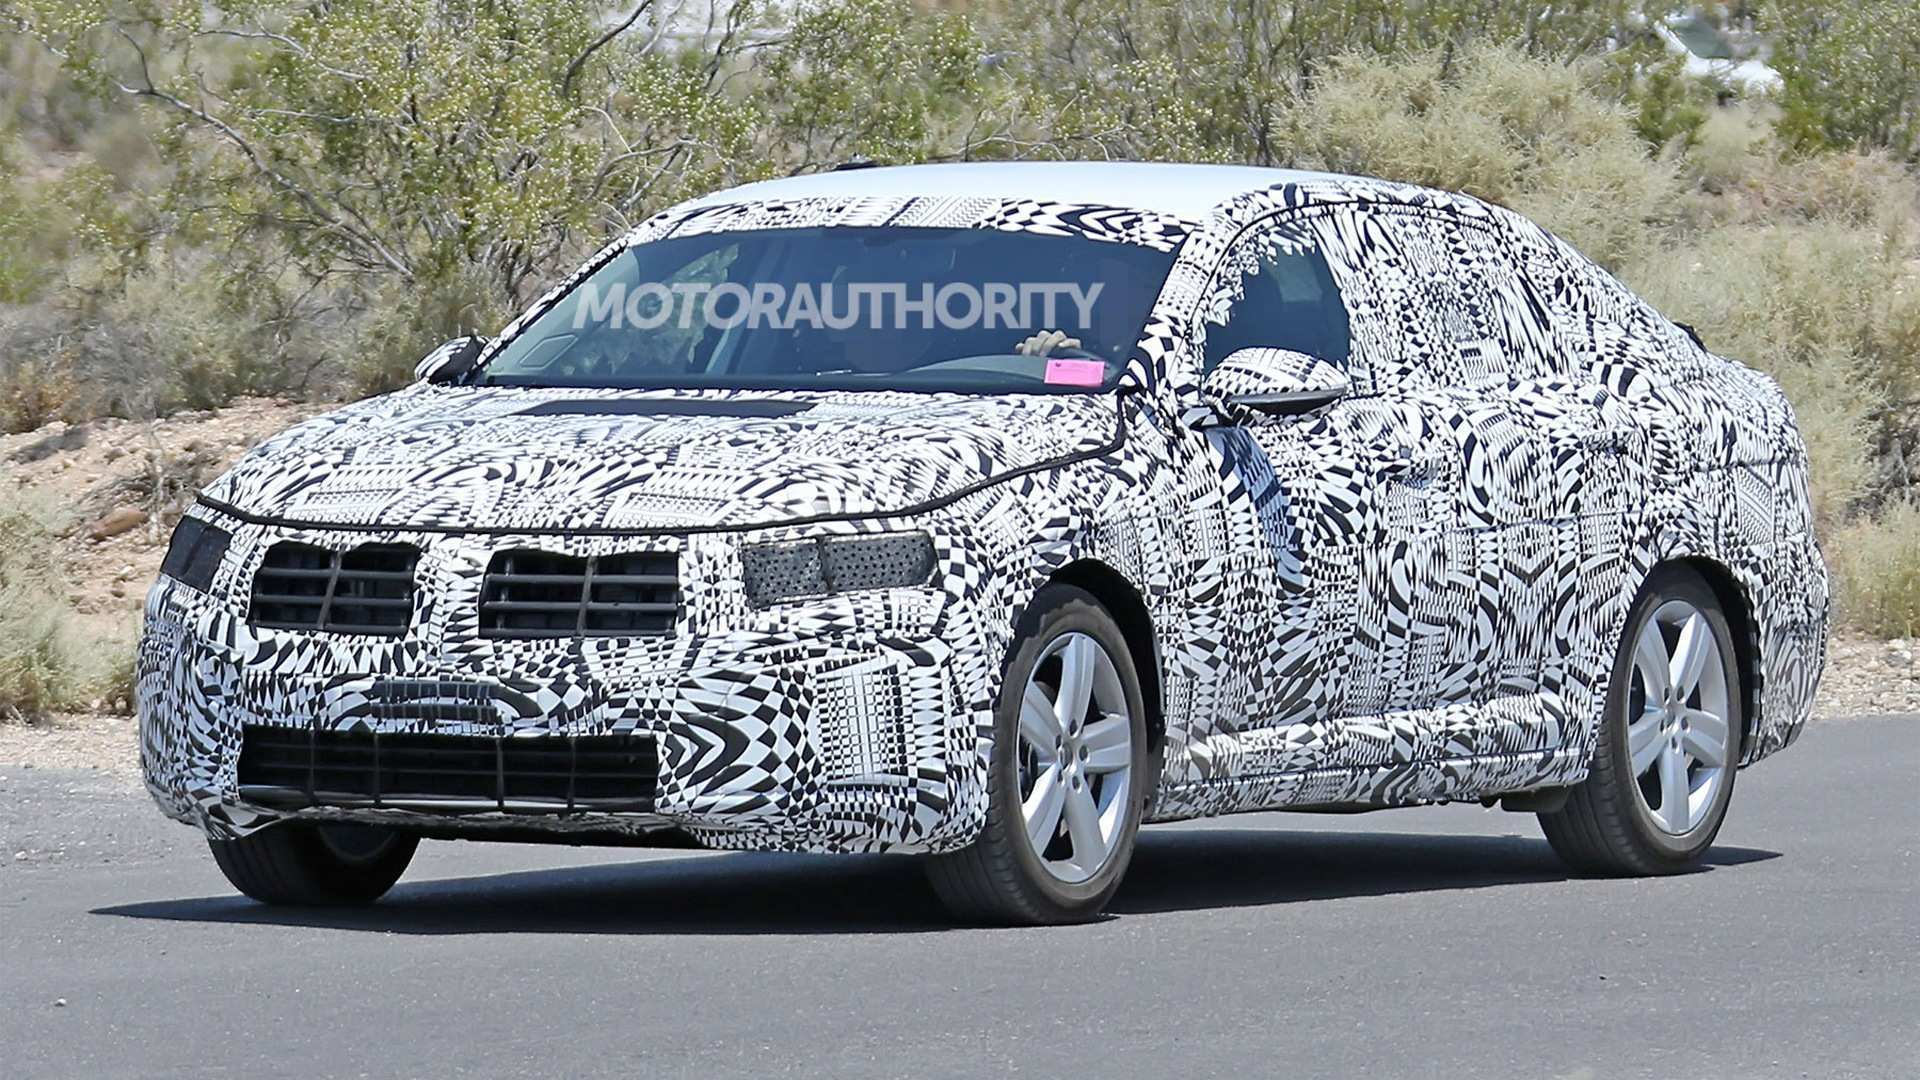 70 The 2019 Vw Jetta Spy Shots Images for 2019 Vw Jetta Spy Shots